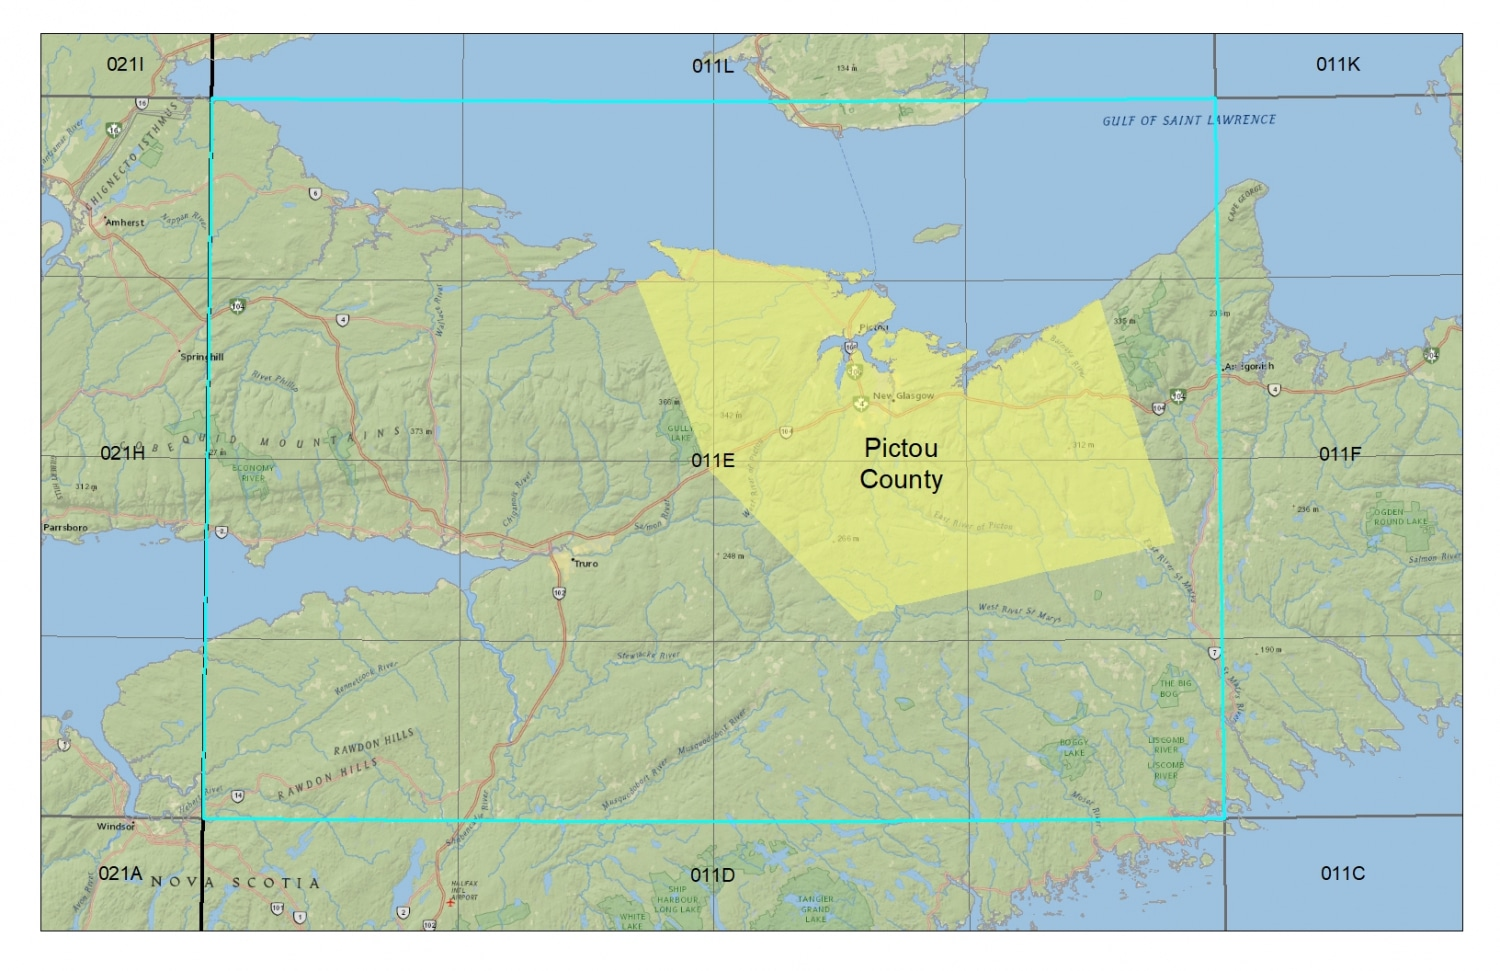 Pictou County Topographic Maps - Topographic NTS map grid